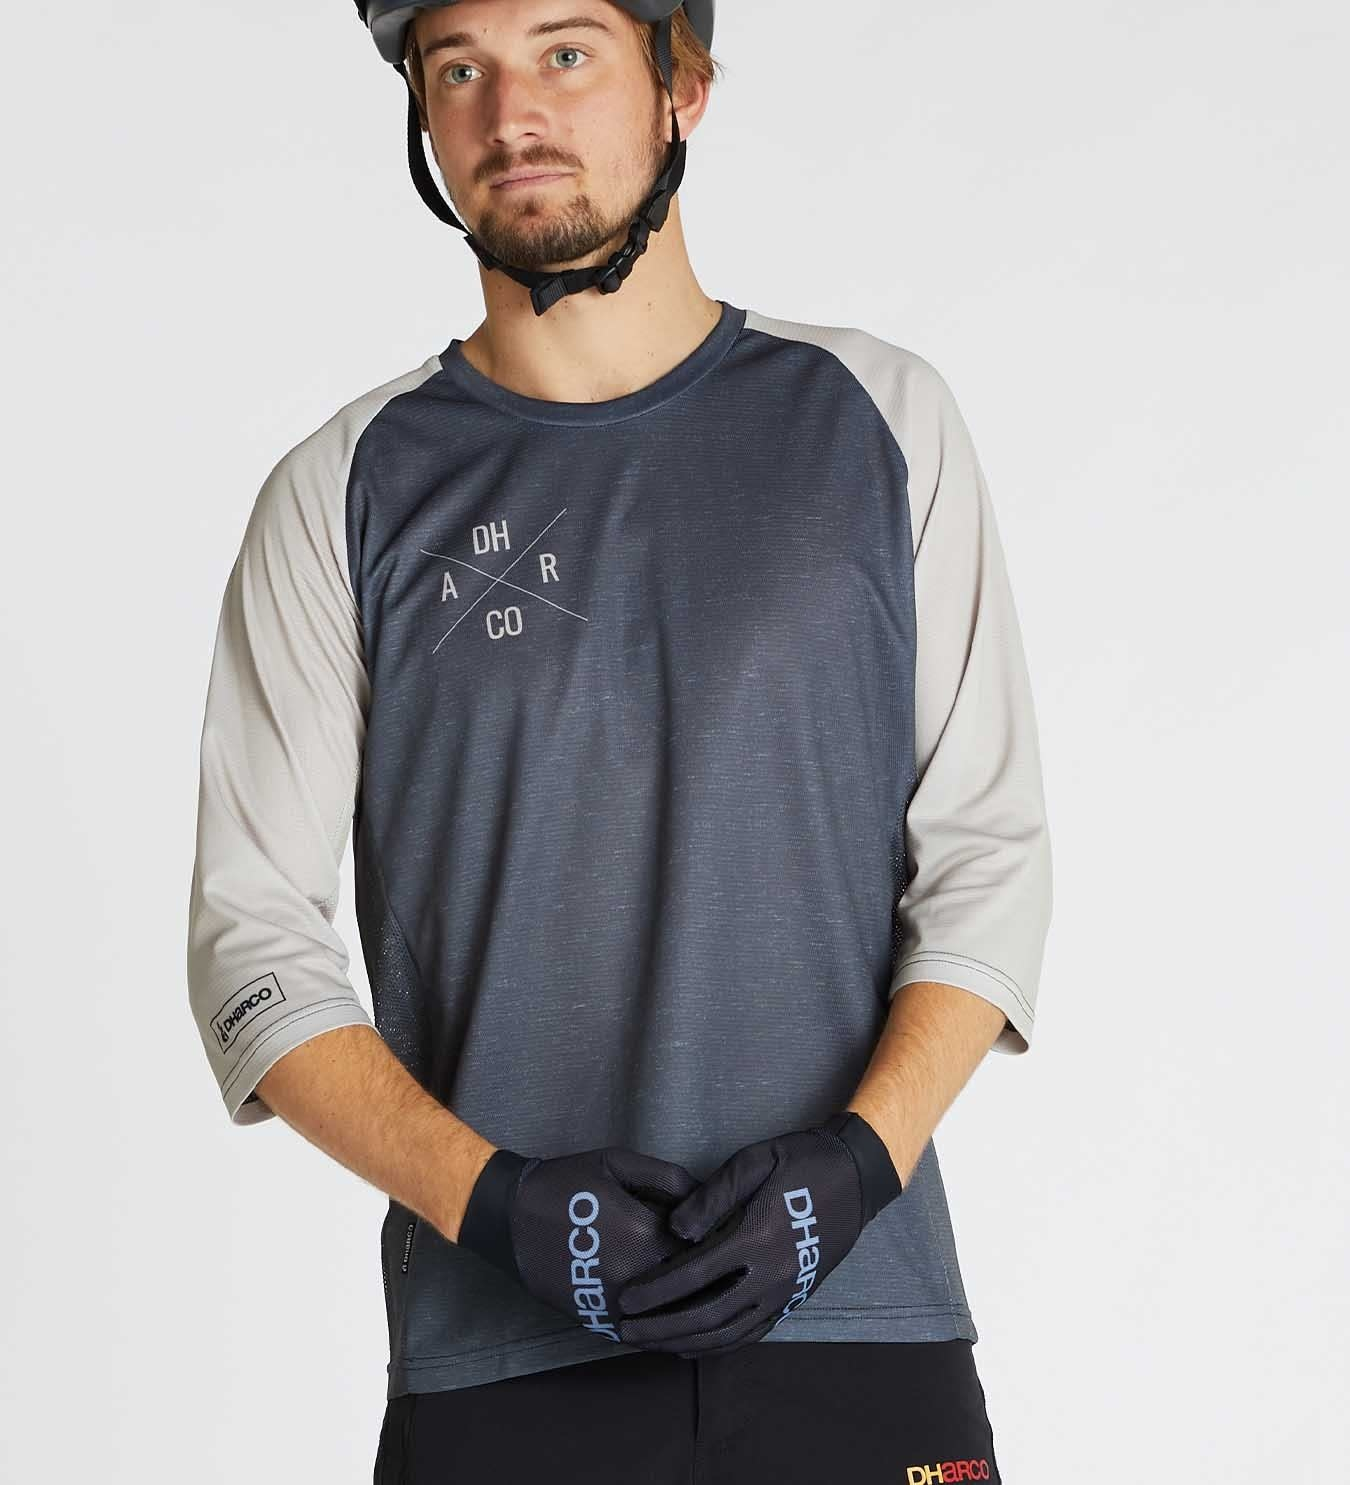 DHaRCO DHaRCO Men's 3/4 Sleeve Jersey